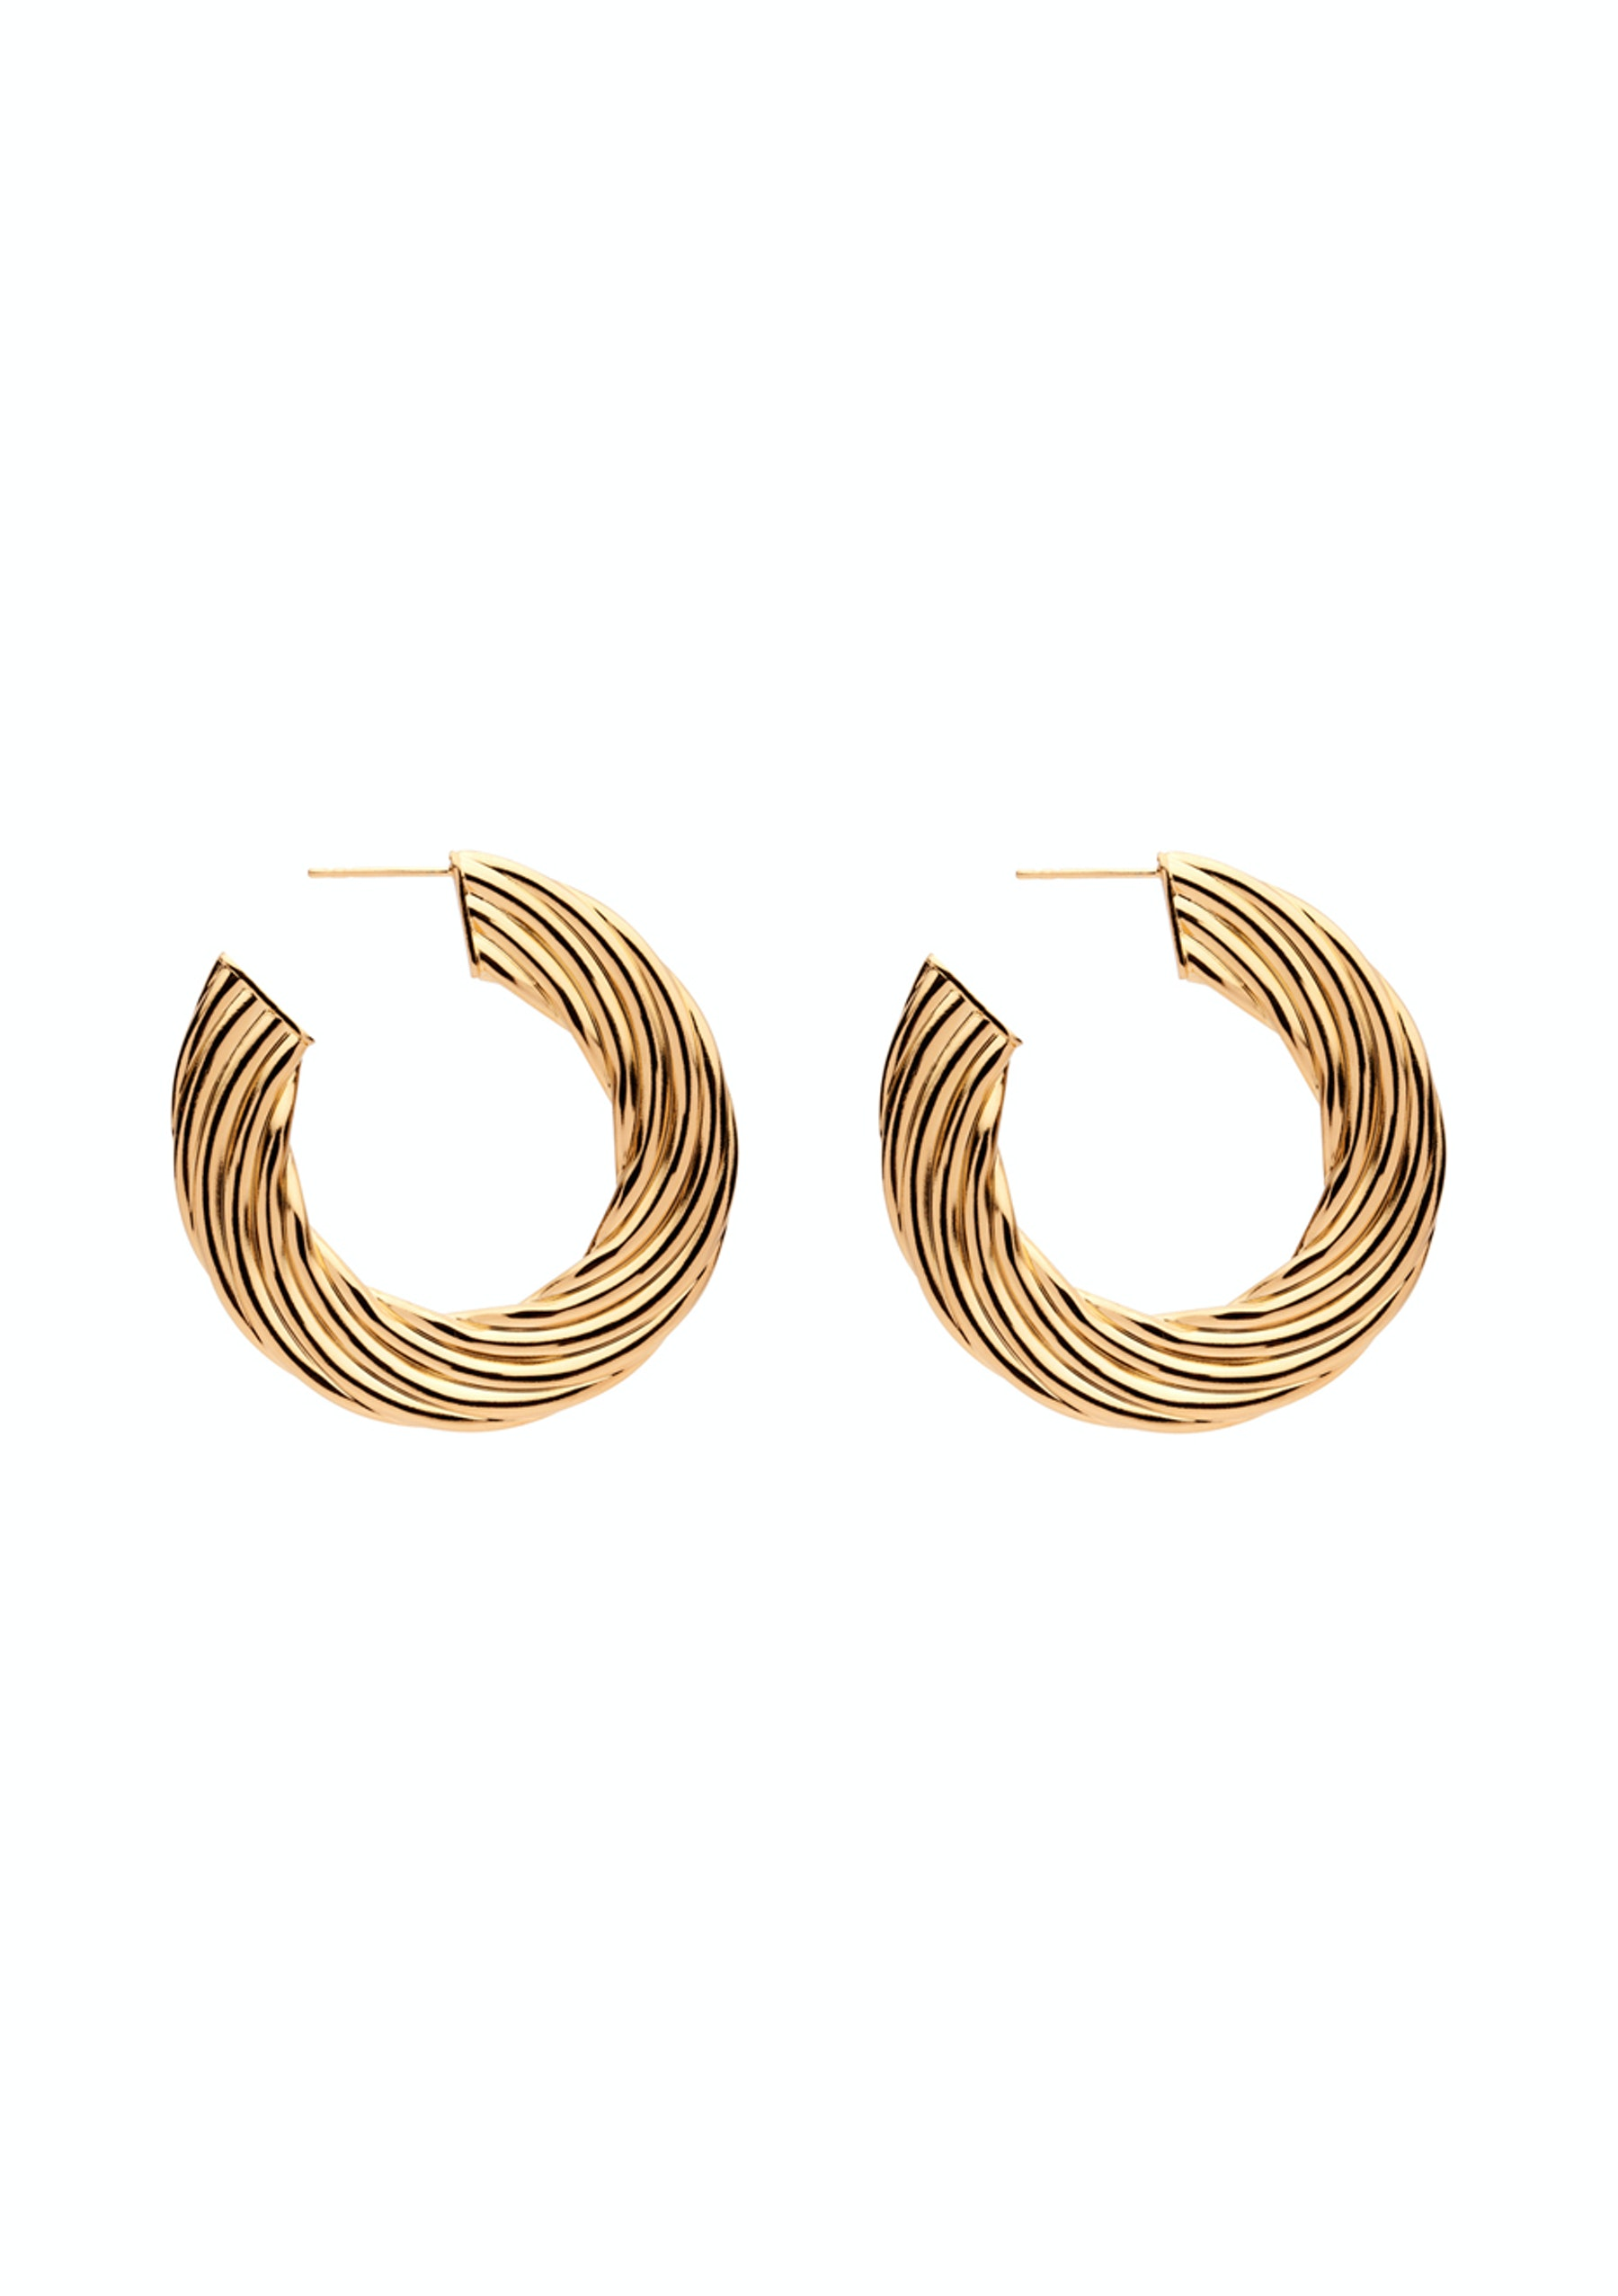 Amber Sceats Bec Gold Earrings Made In Italy Mega Designer